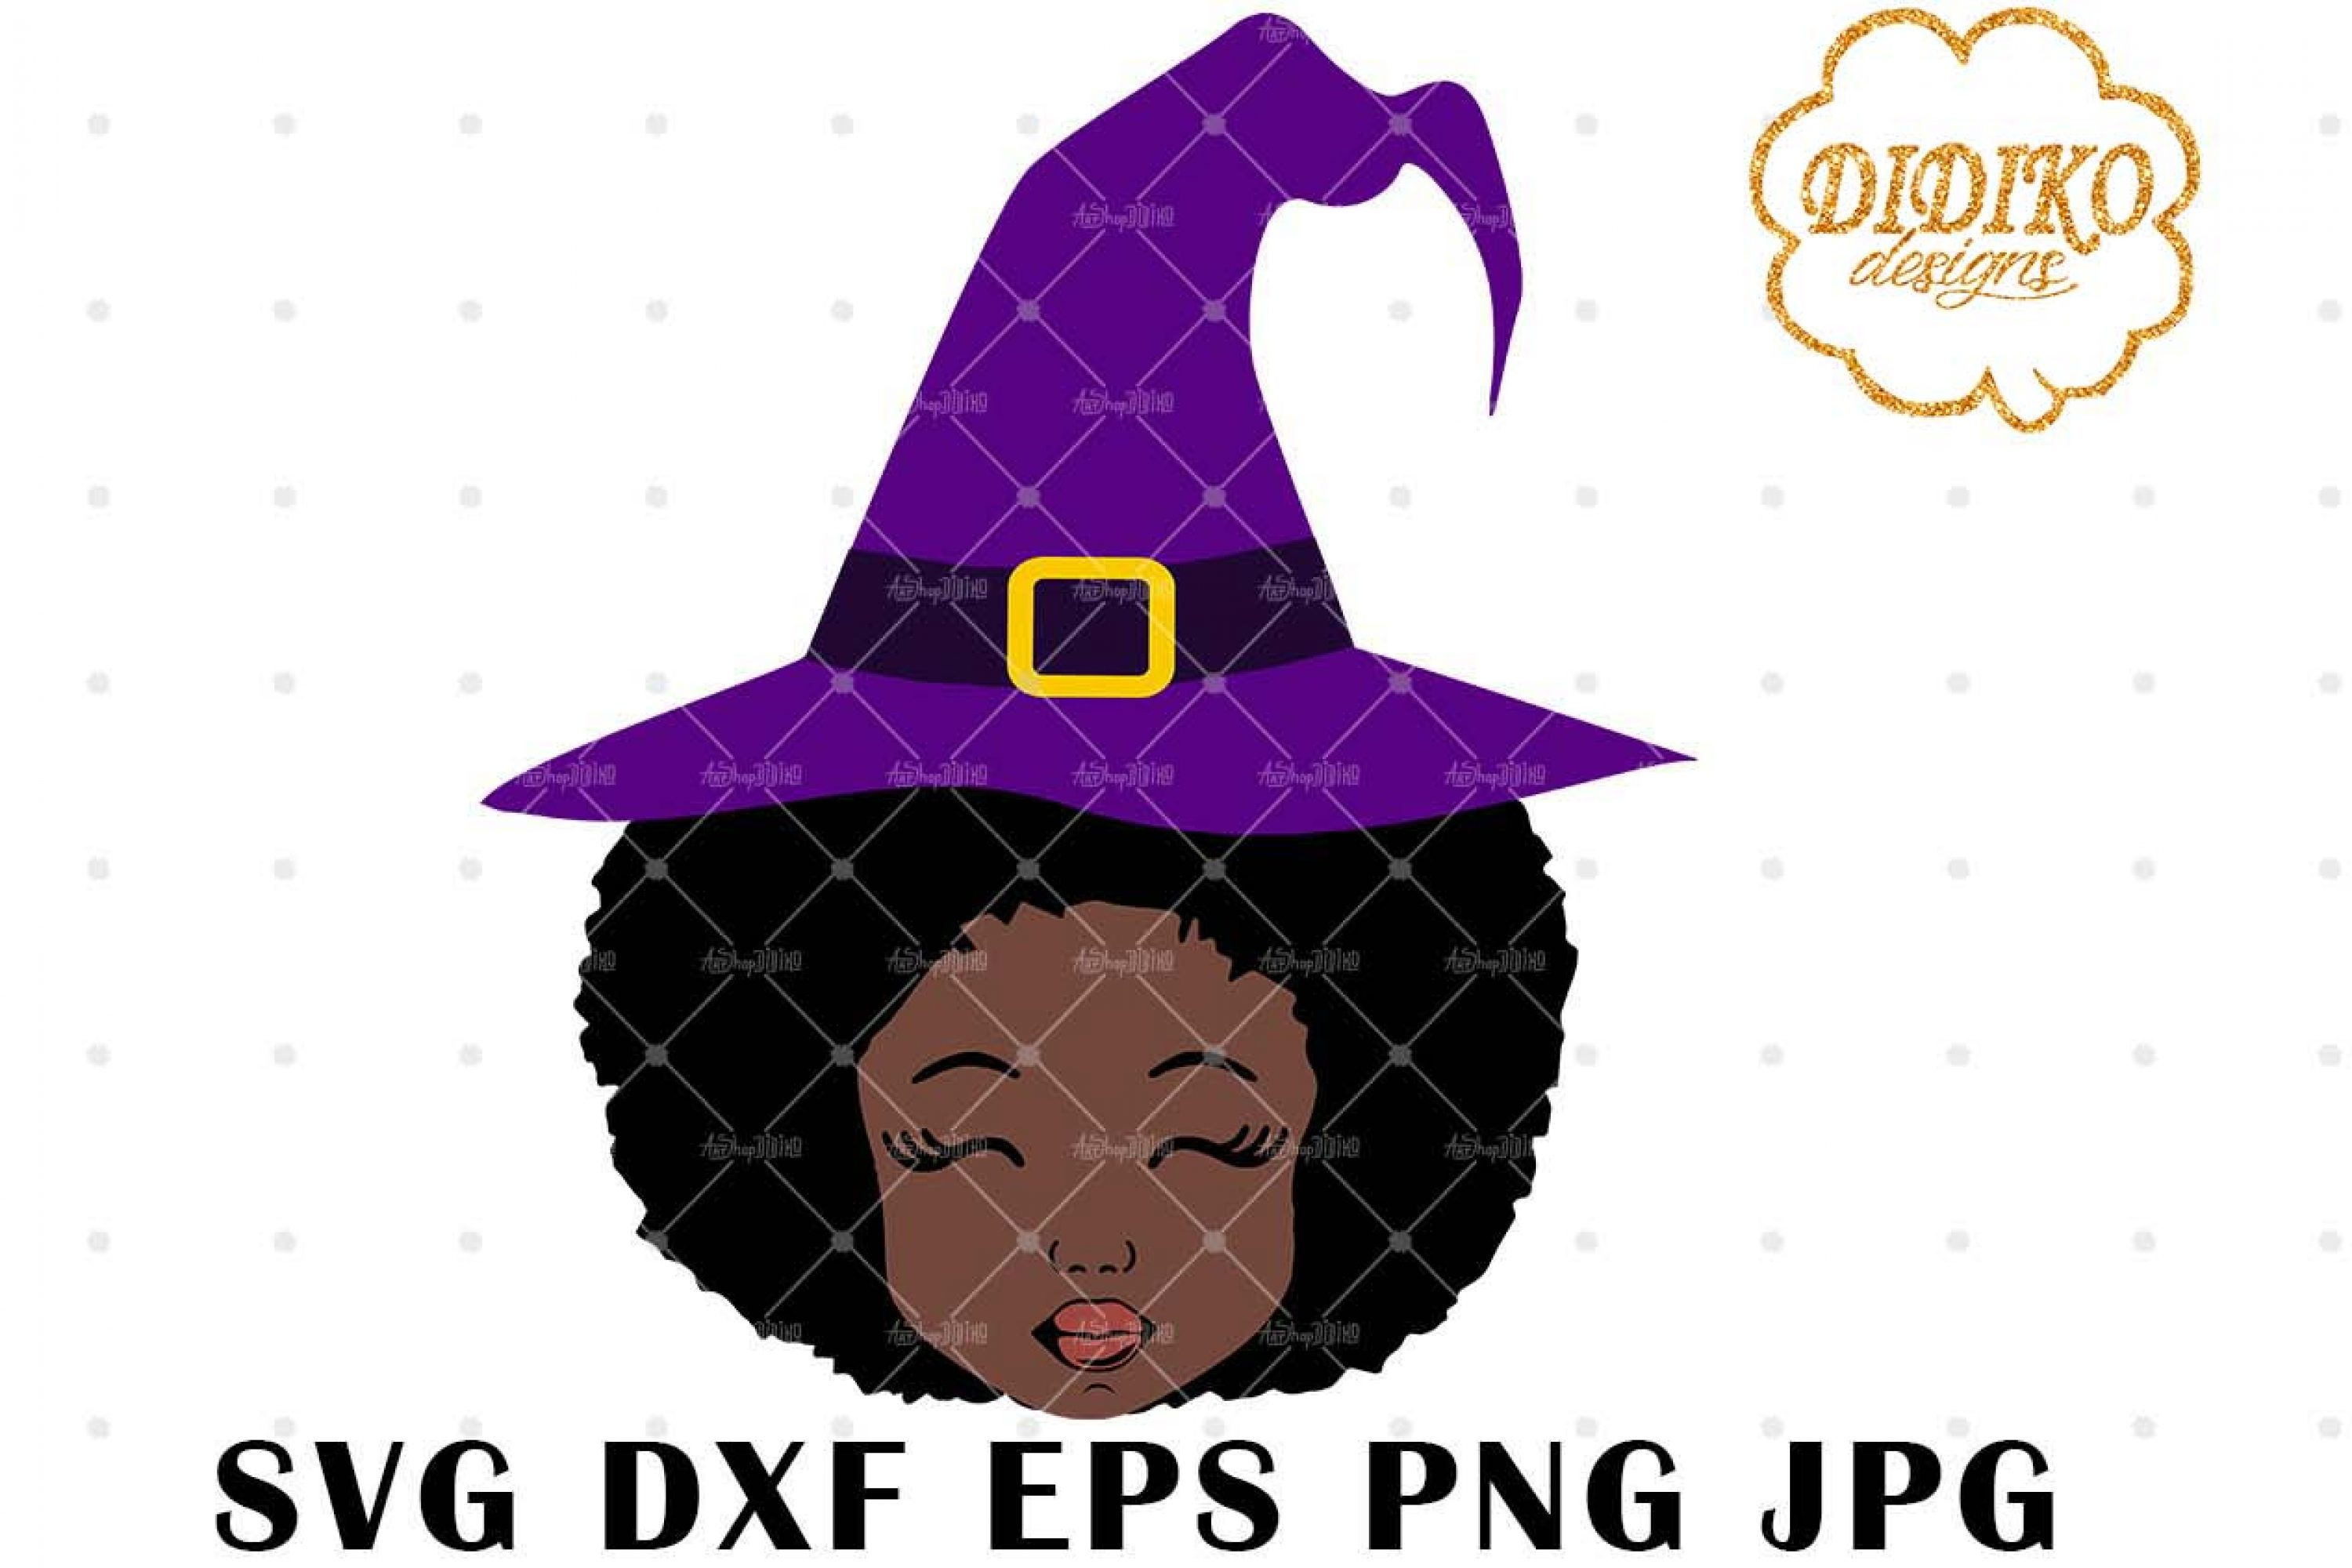 Halloween Afro Girl 2 SVG, Witch Hat SVG, Afro Puff svg